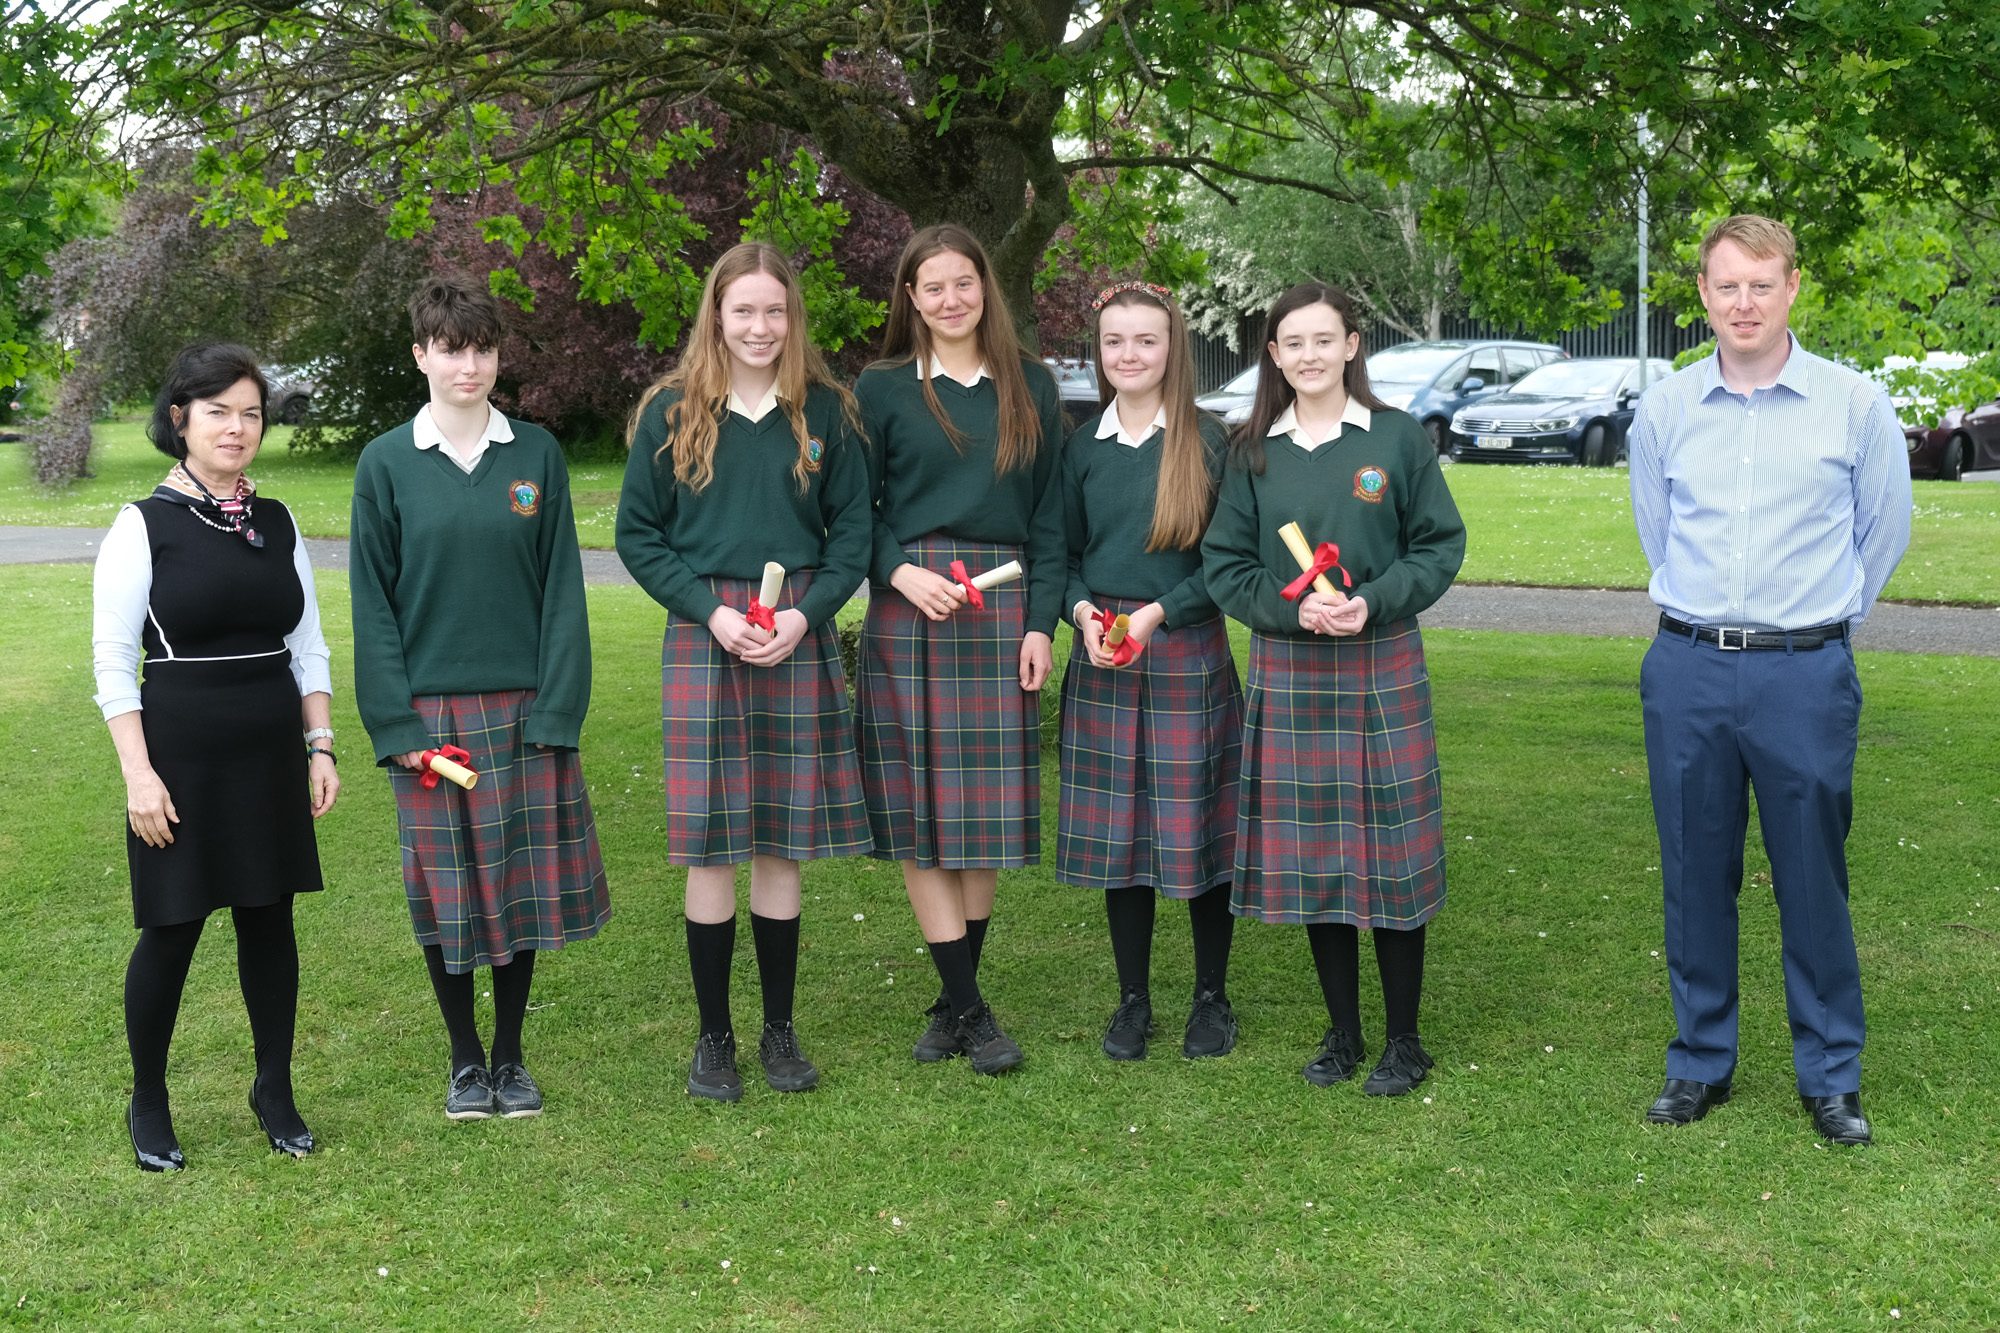 3rd Year Class Awards,  Betty O'Hare, Tara Neville Moynihan , Ailbhe Harrington, Siún O'Gorman, Sophie Baker, Shauna Long, Mark Kennedy